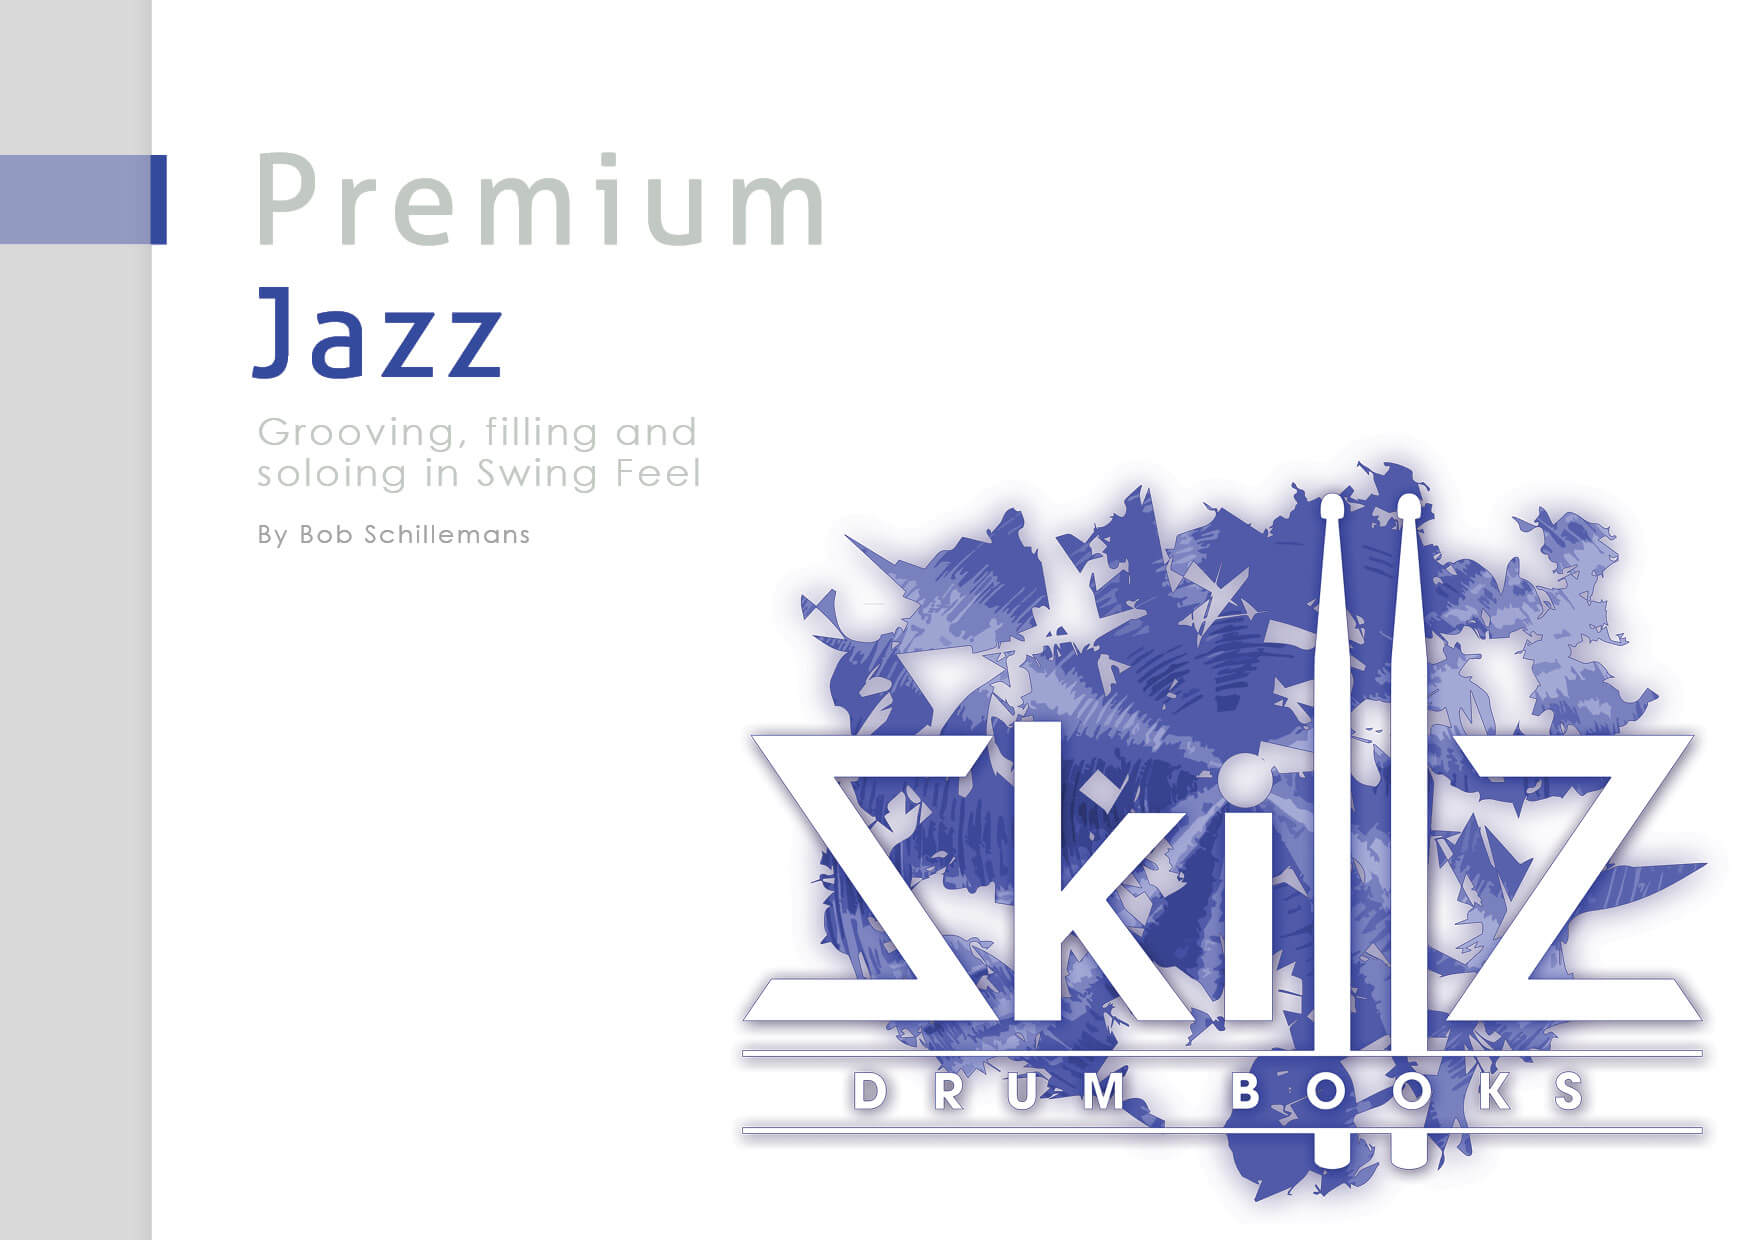 Cover of the Premium Jazz Drumming Course by Skillz Drum Lessons